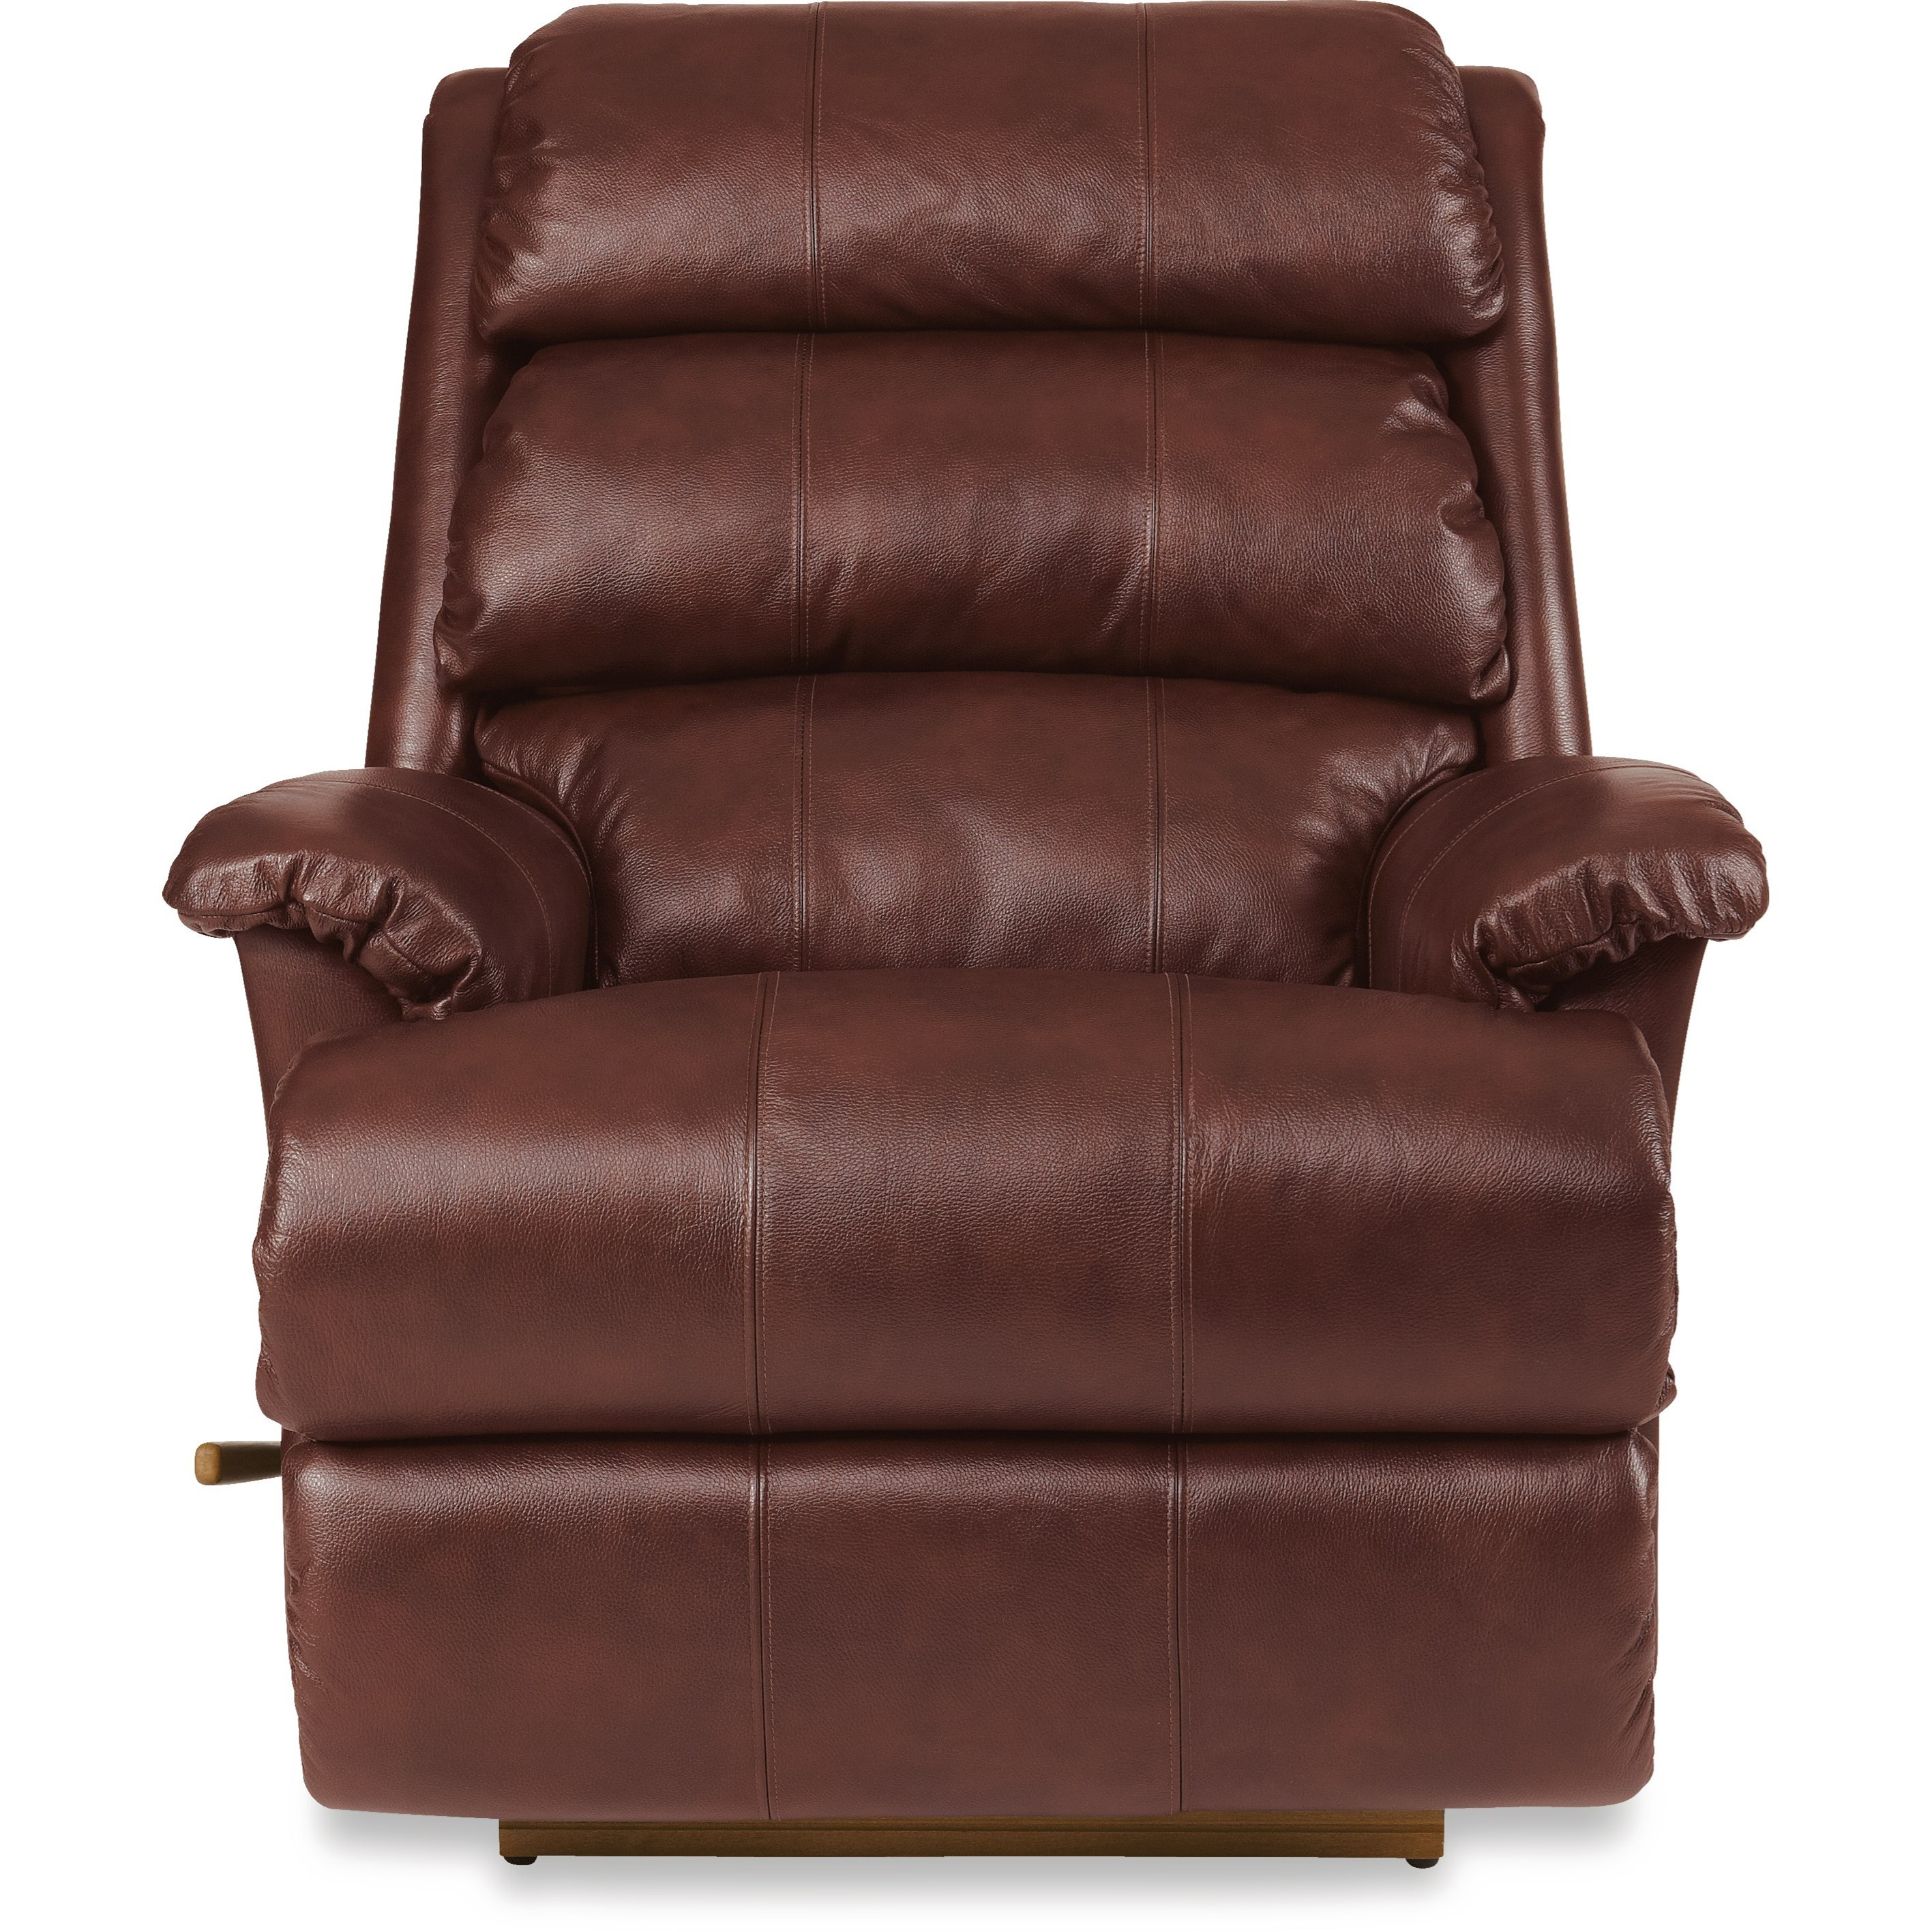 Astor RECLINA-WAY® Wall Recliner by La-Z-Boy at Houston's Yuma Furniture